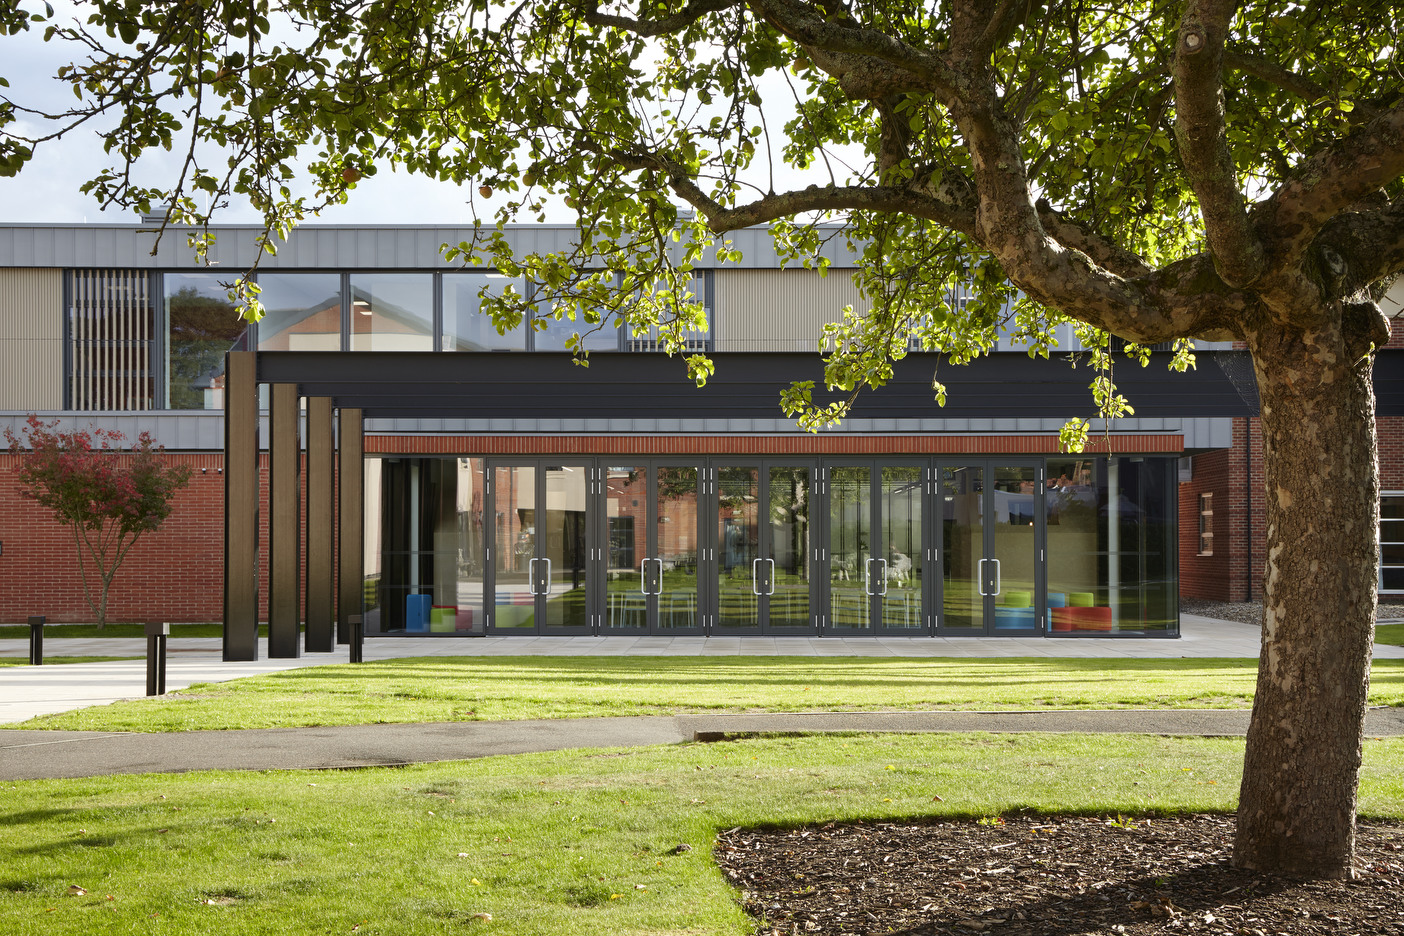 The Space at Queen Anne's School